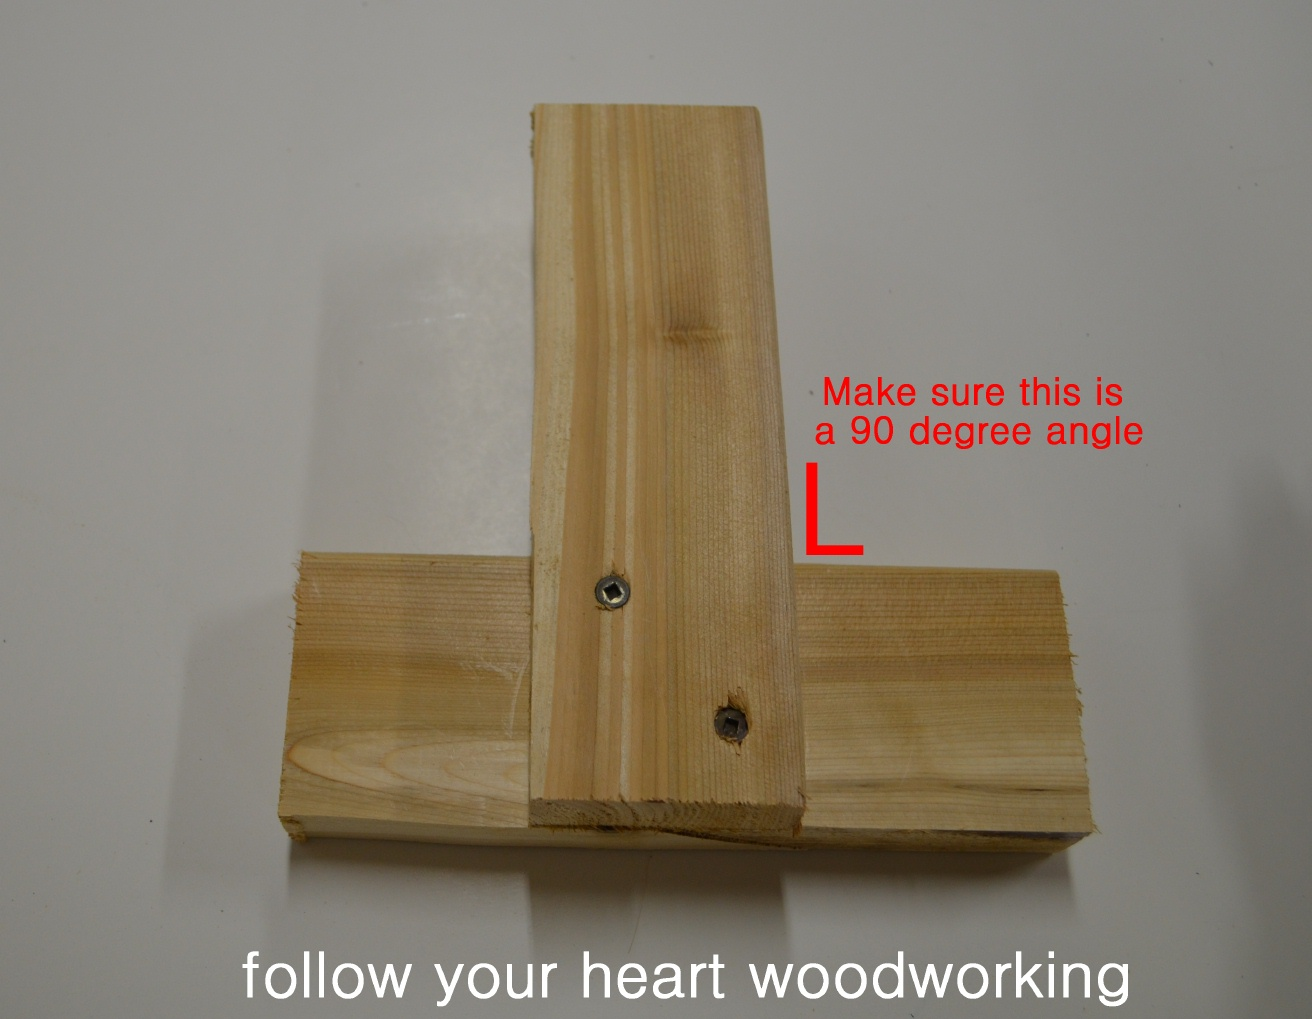 ... the wood edges are straight and the jig forms a perfect 90 degrees